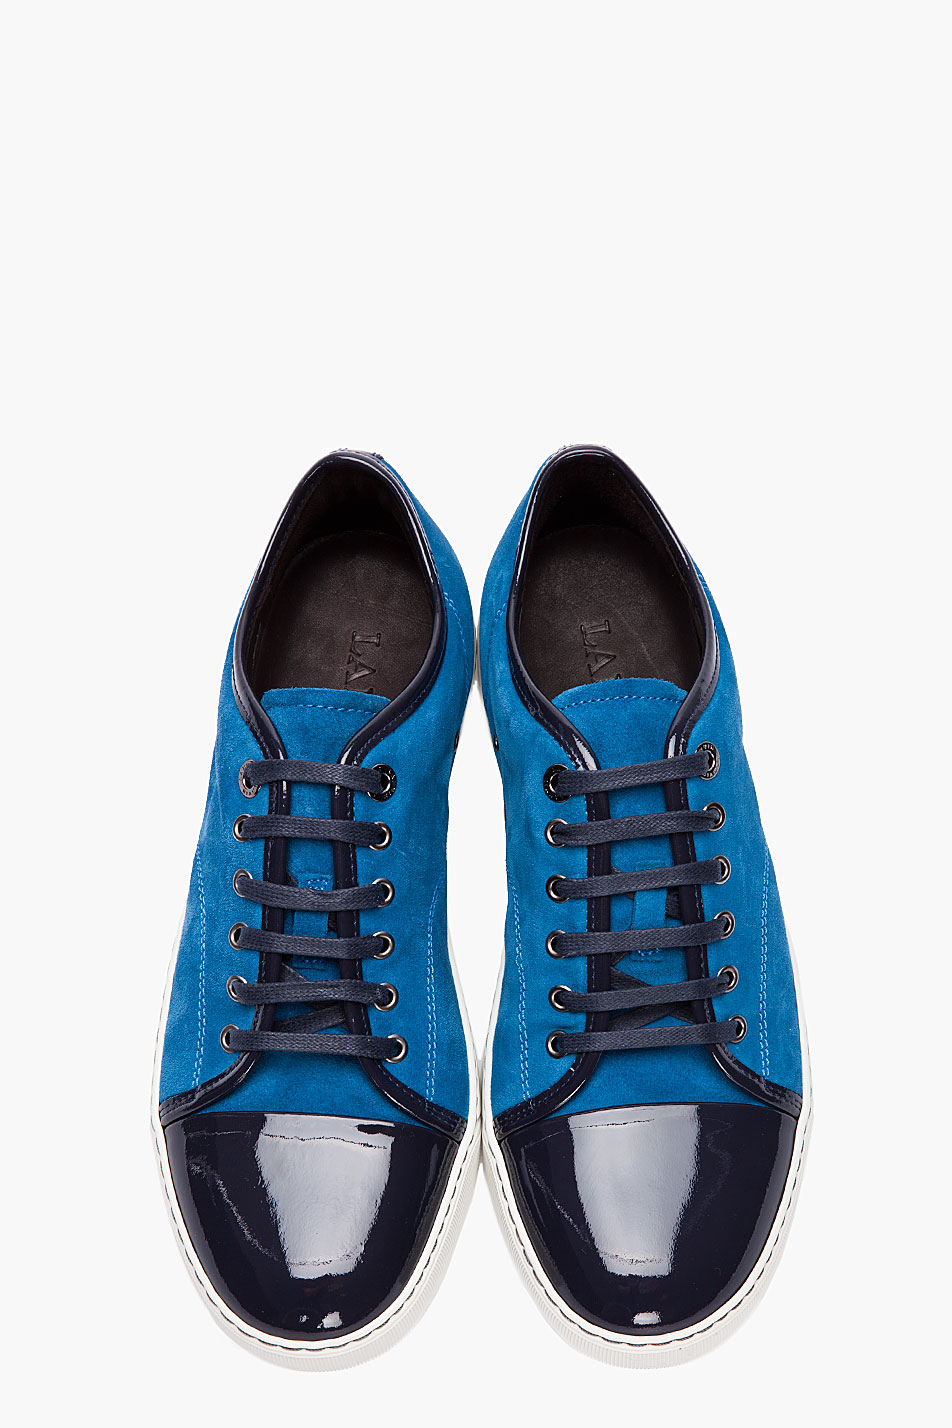 lanvin blue combo patent and suede tennis shoes in blue